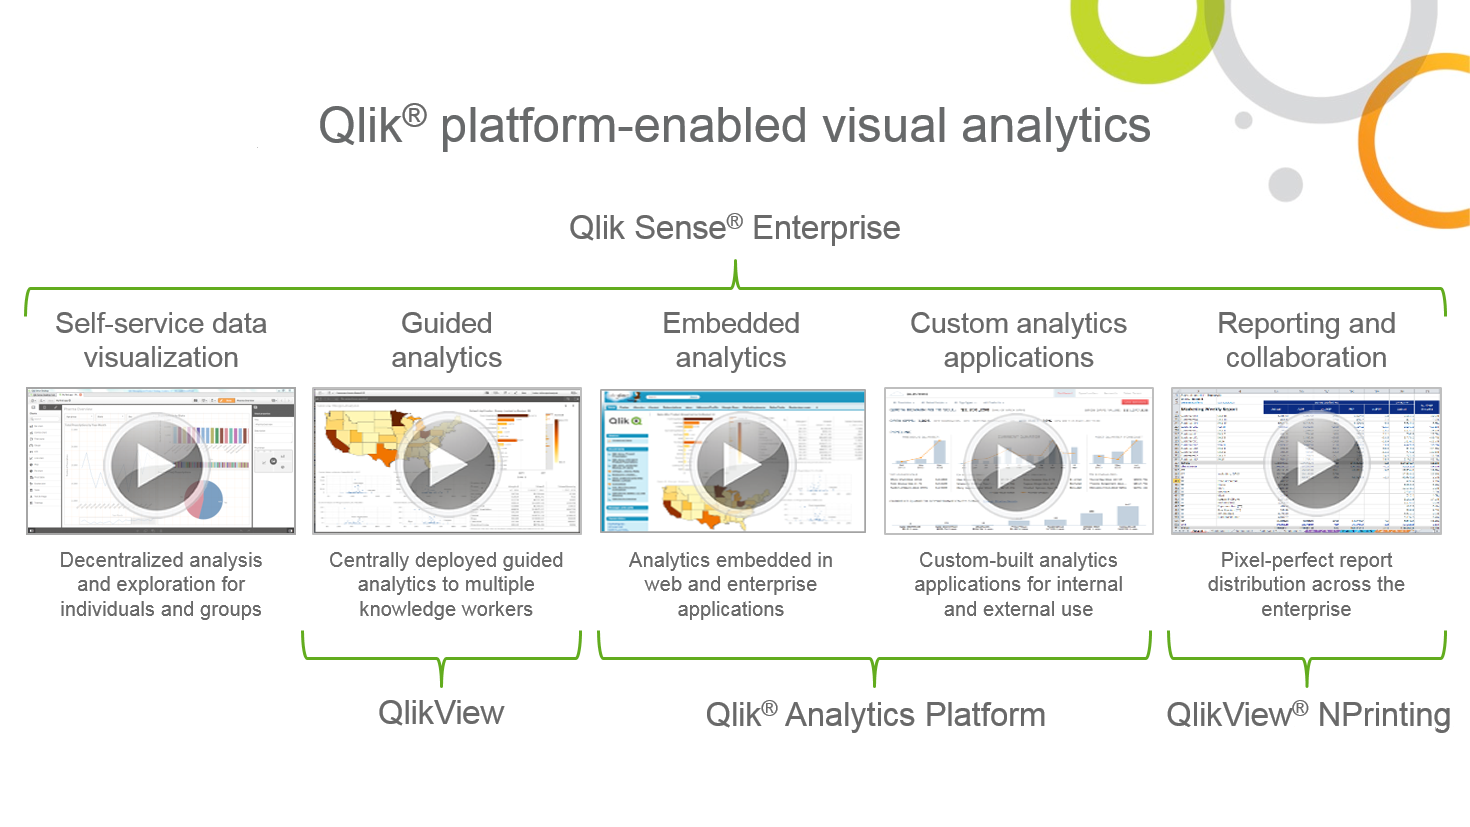 Qlik use cases for Qlik platform-enabled analytics